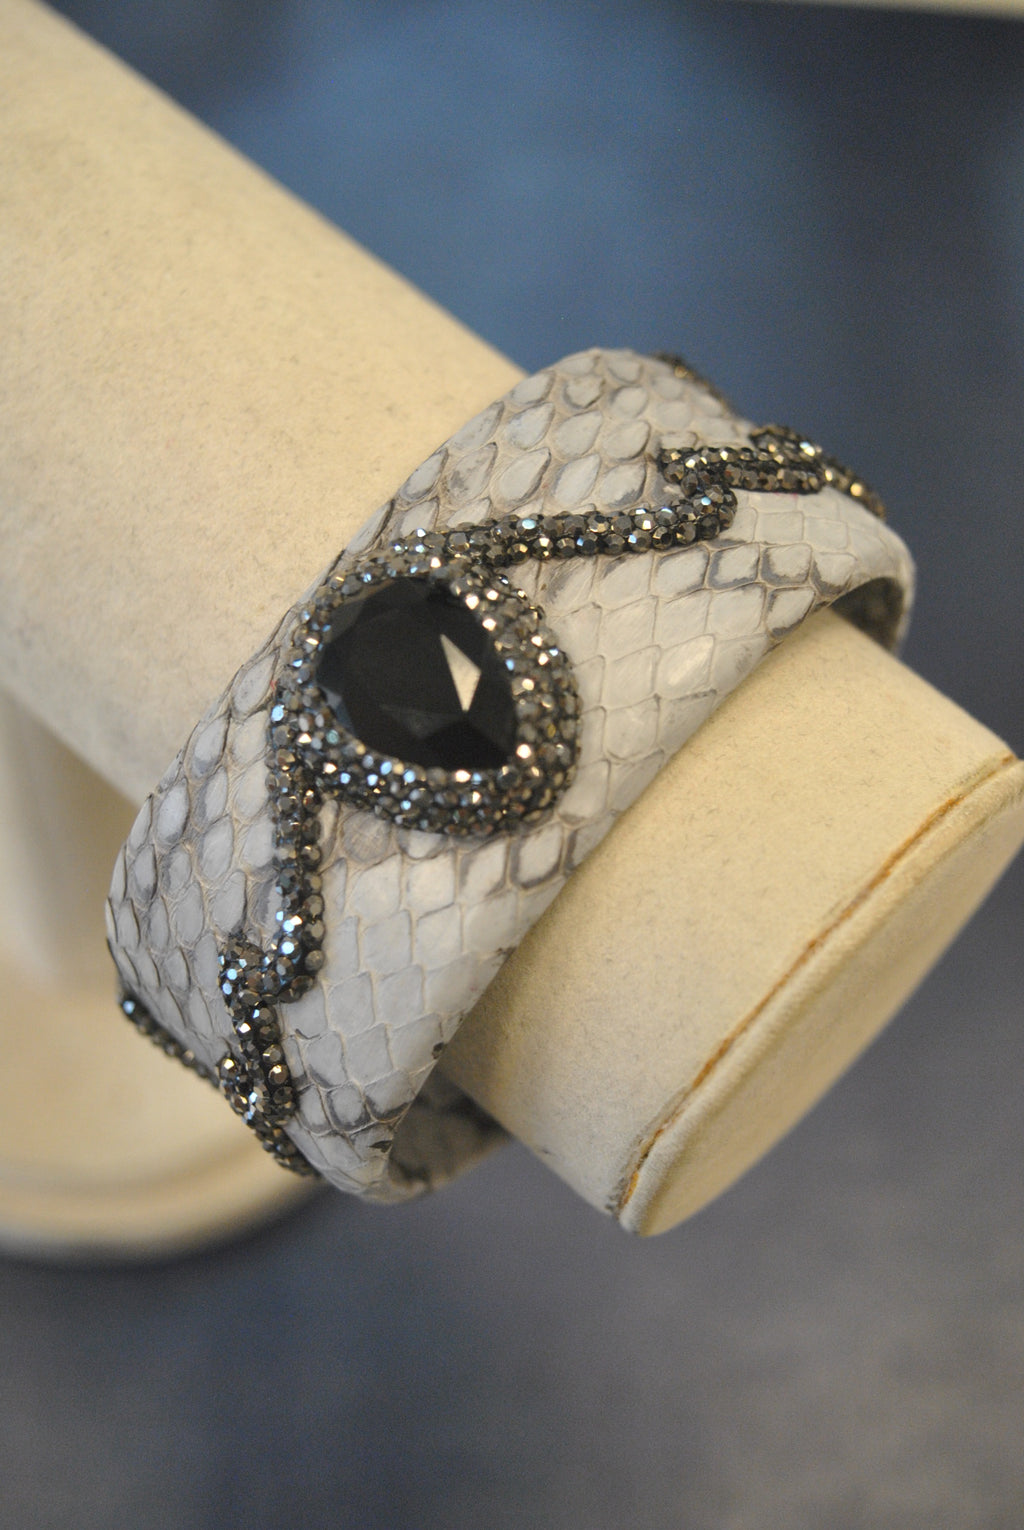 LEATHER COLLECTION - GREY LEATHER AND BLACK ONYX WITH SWAROVSKI CRYSTALS CUFF BRACELET